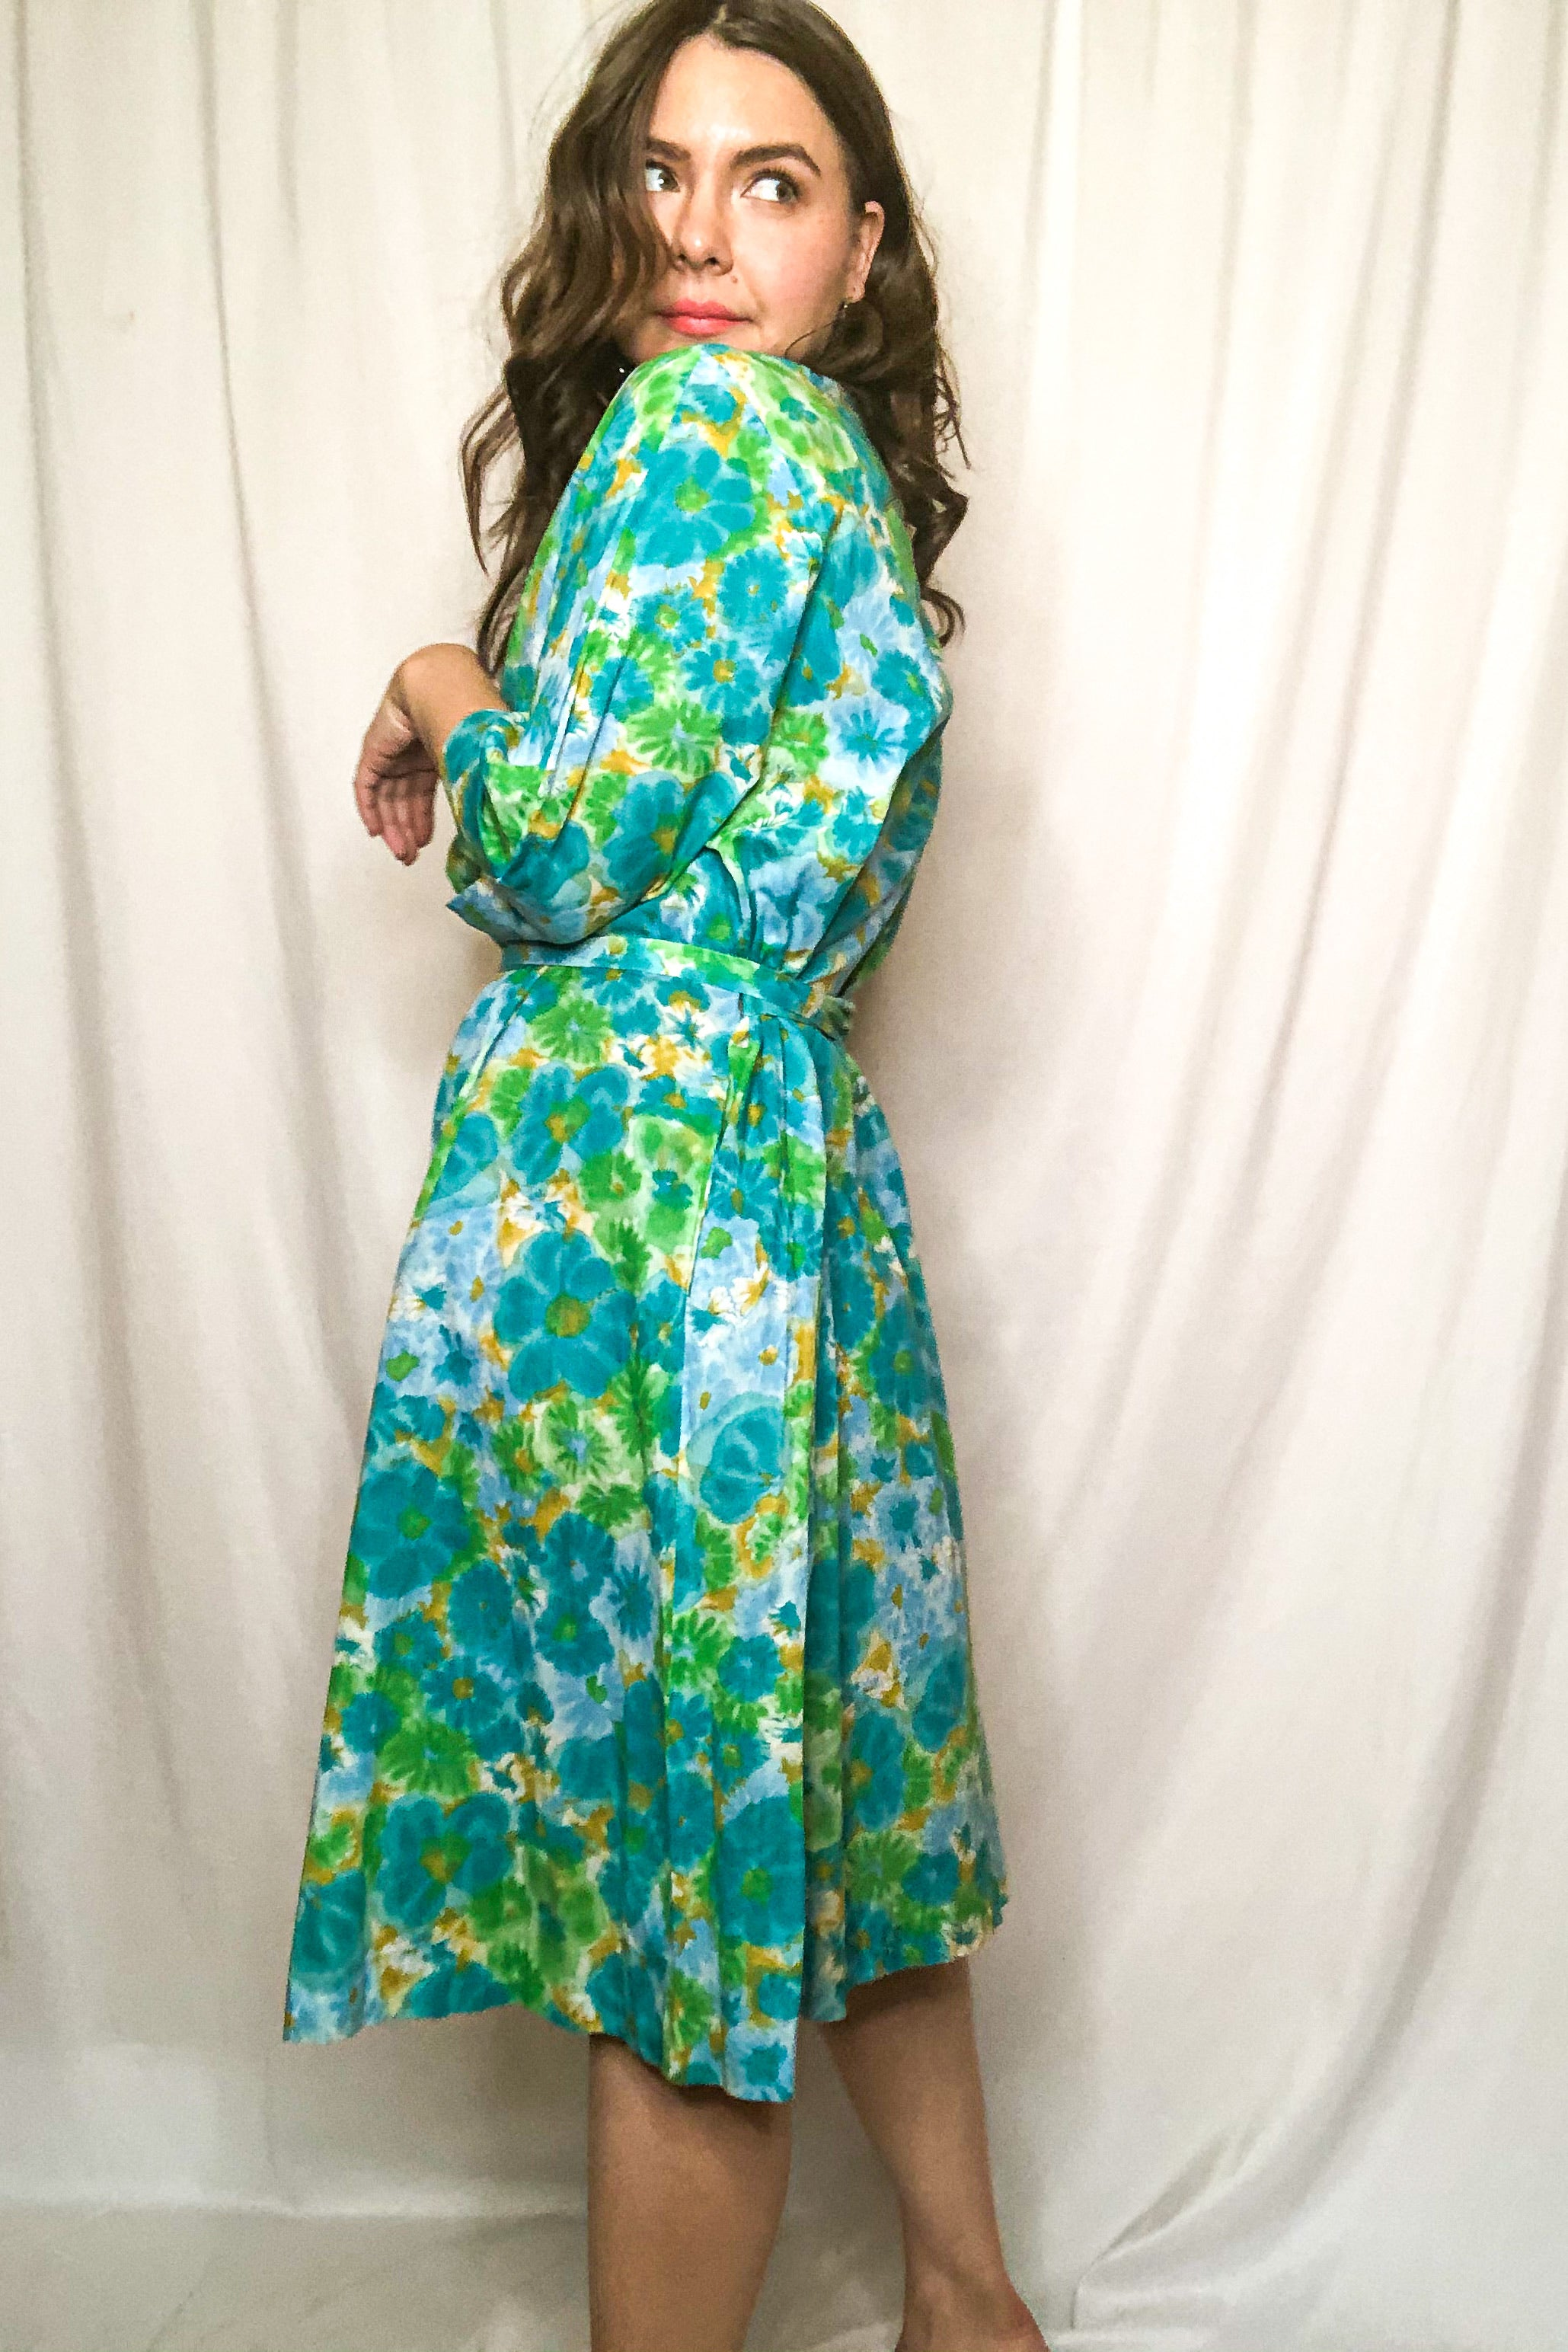 Vintage 60s Blue Floral House Dress / S - M